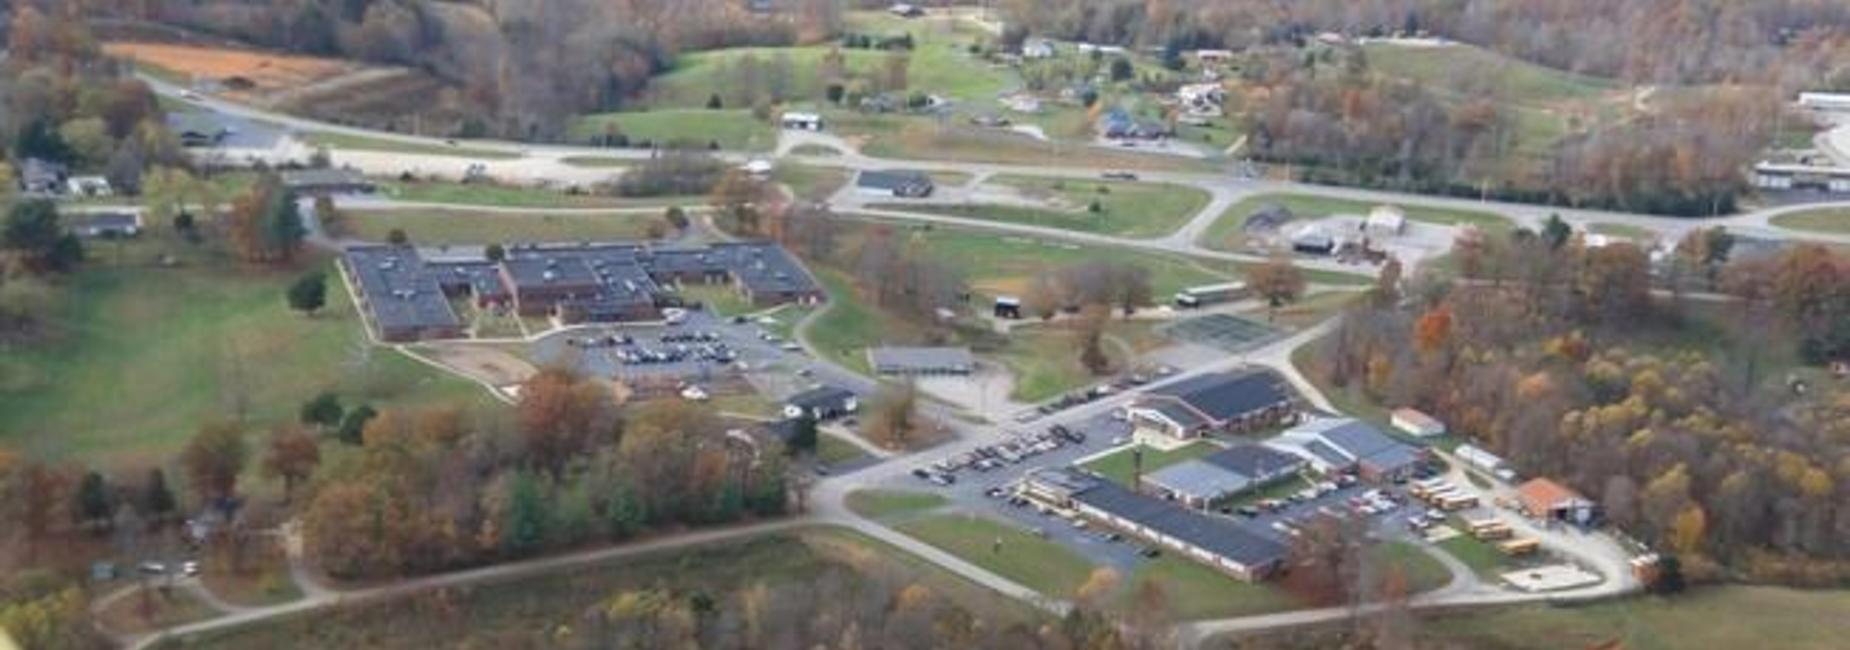 Aerial view of Pickett County Schools